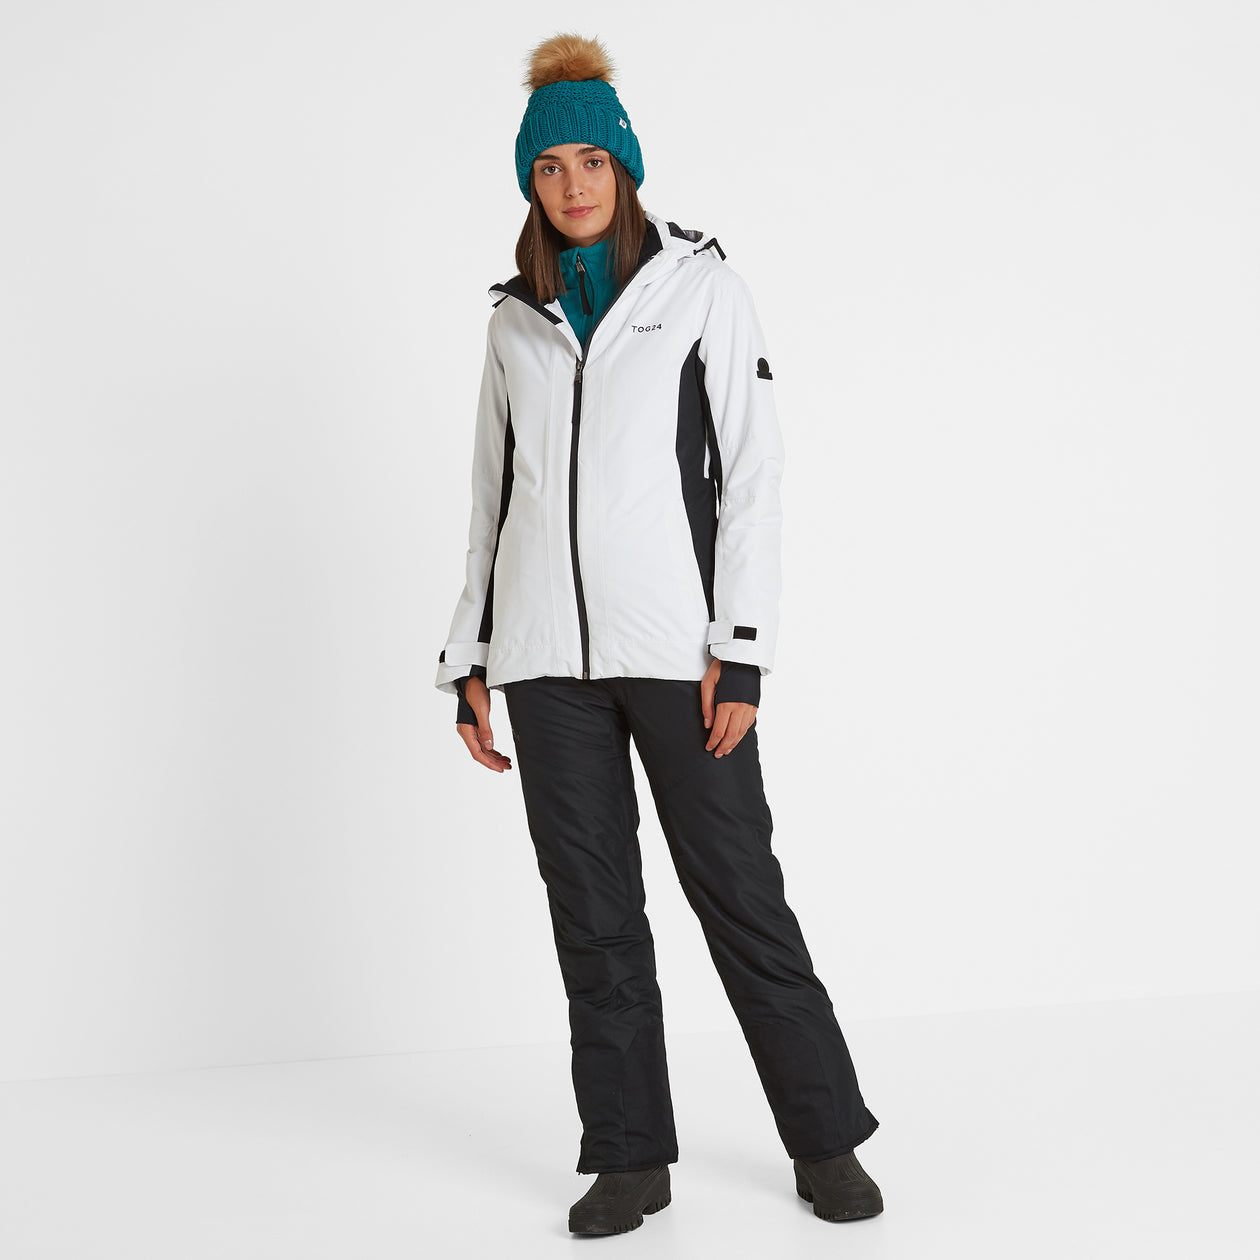 Piper Womens Waterproof Insulated Ski Jacket - White/Black image 4